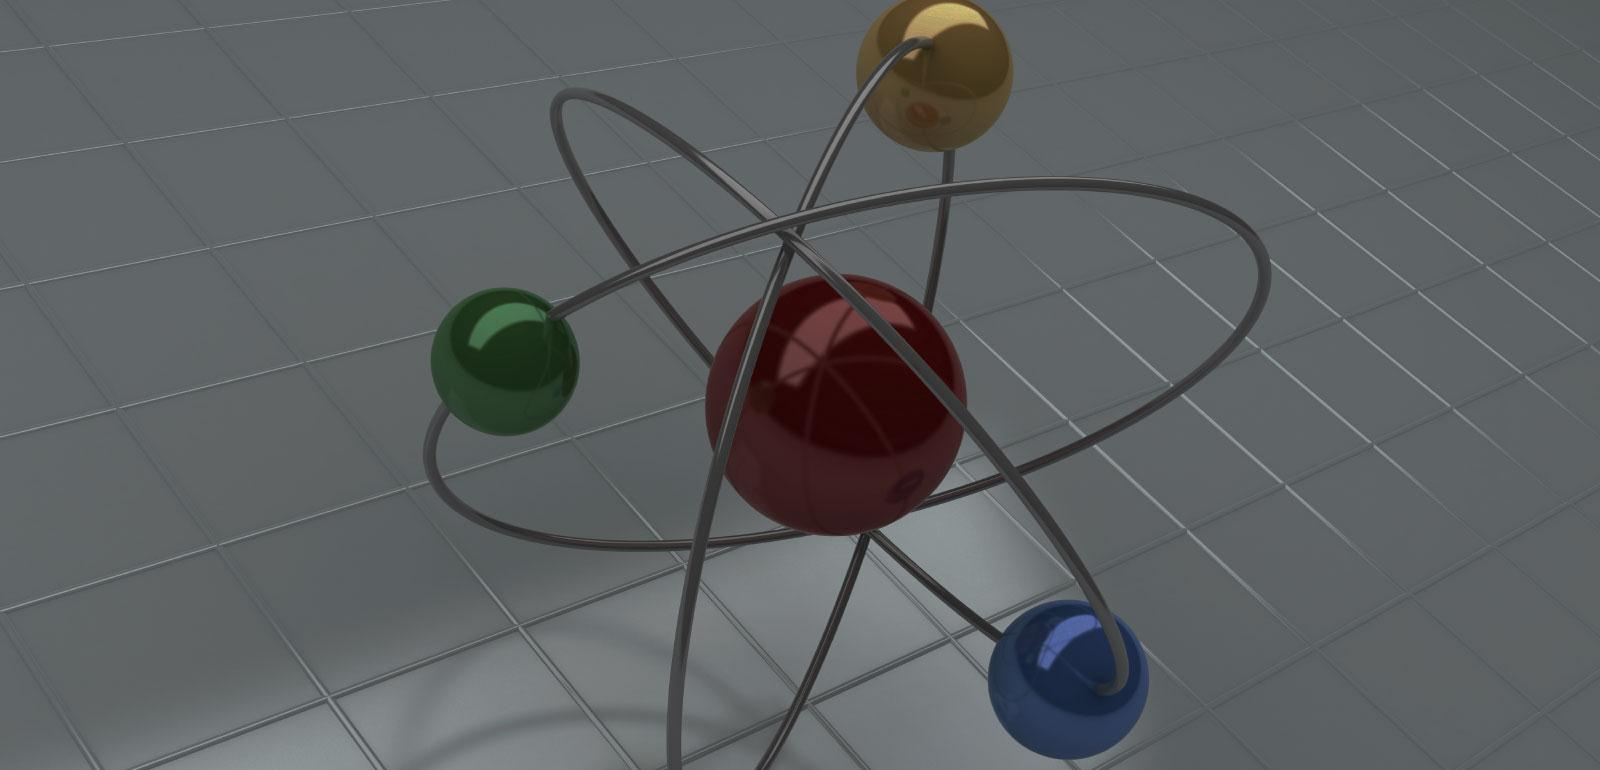 Multifaceted Design of the Strong Nuclear Force